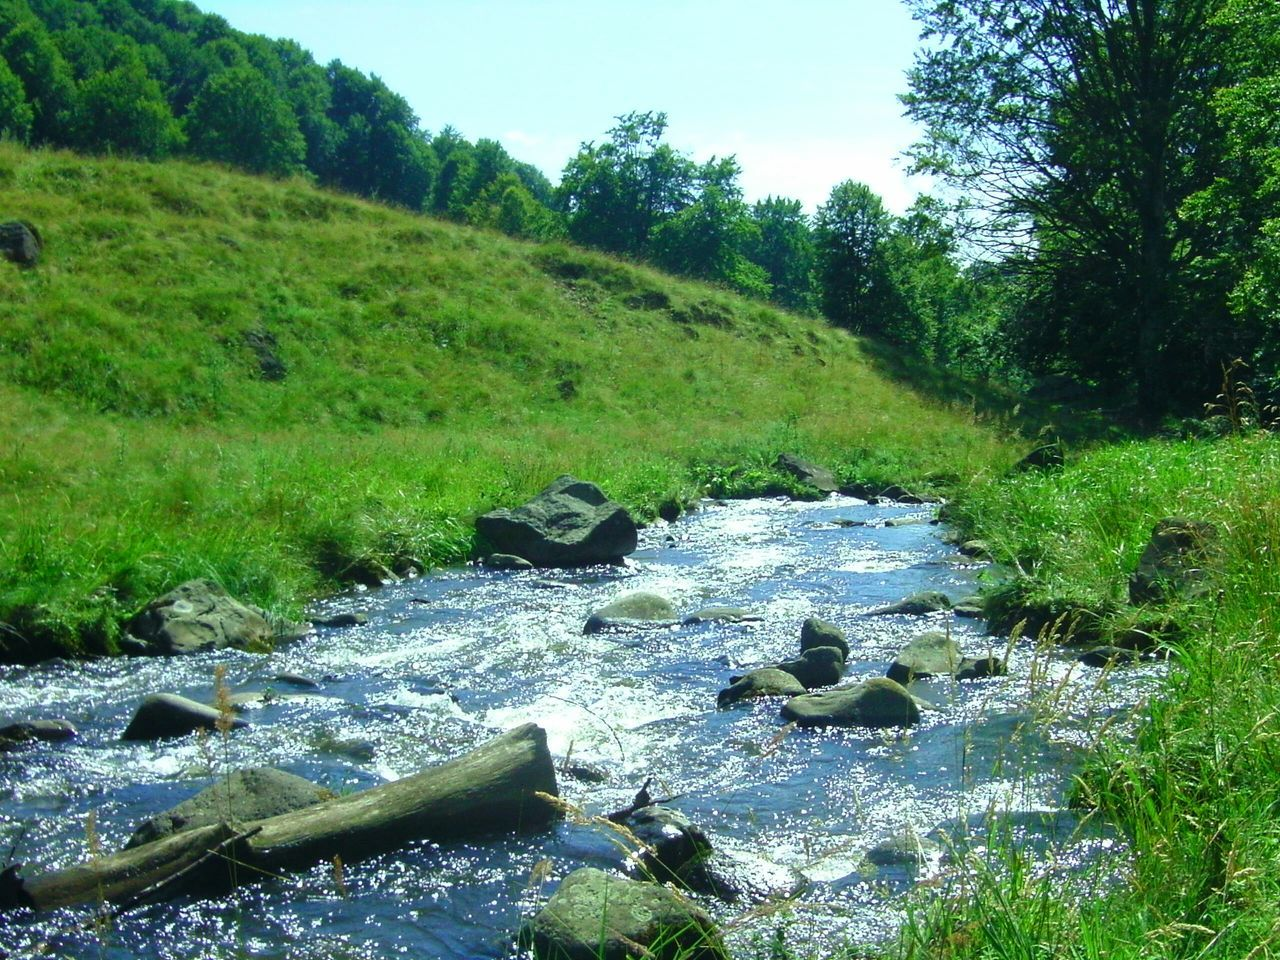 nature, stream, tranquil scene, no people, water, day, grass, tranquility, landscape, beauty in nature, growth, outdoors, scenics, green color, tree, forest